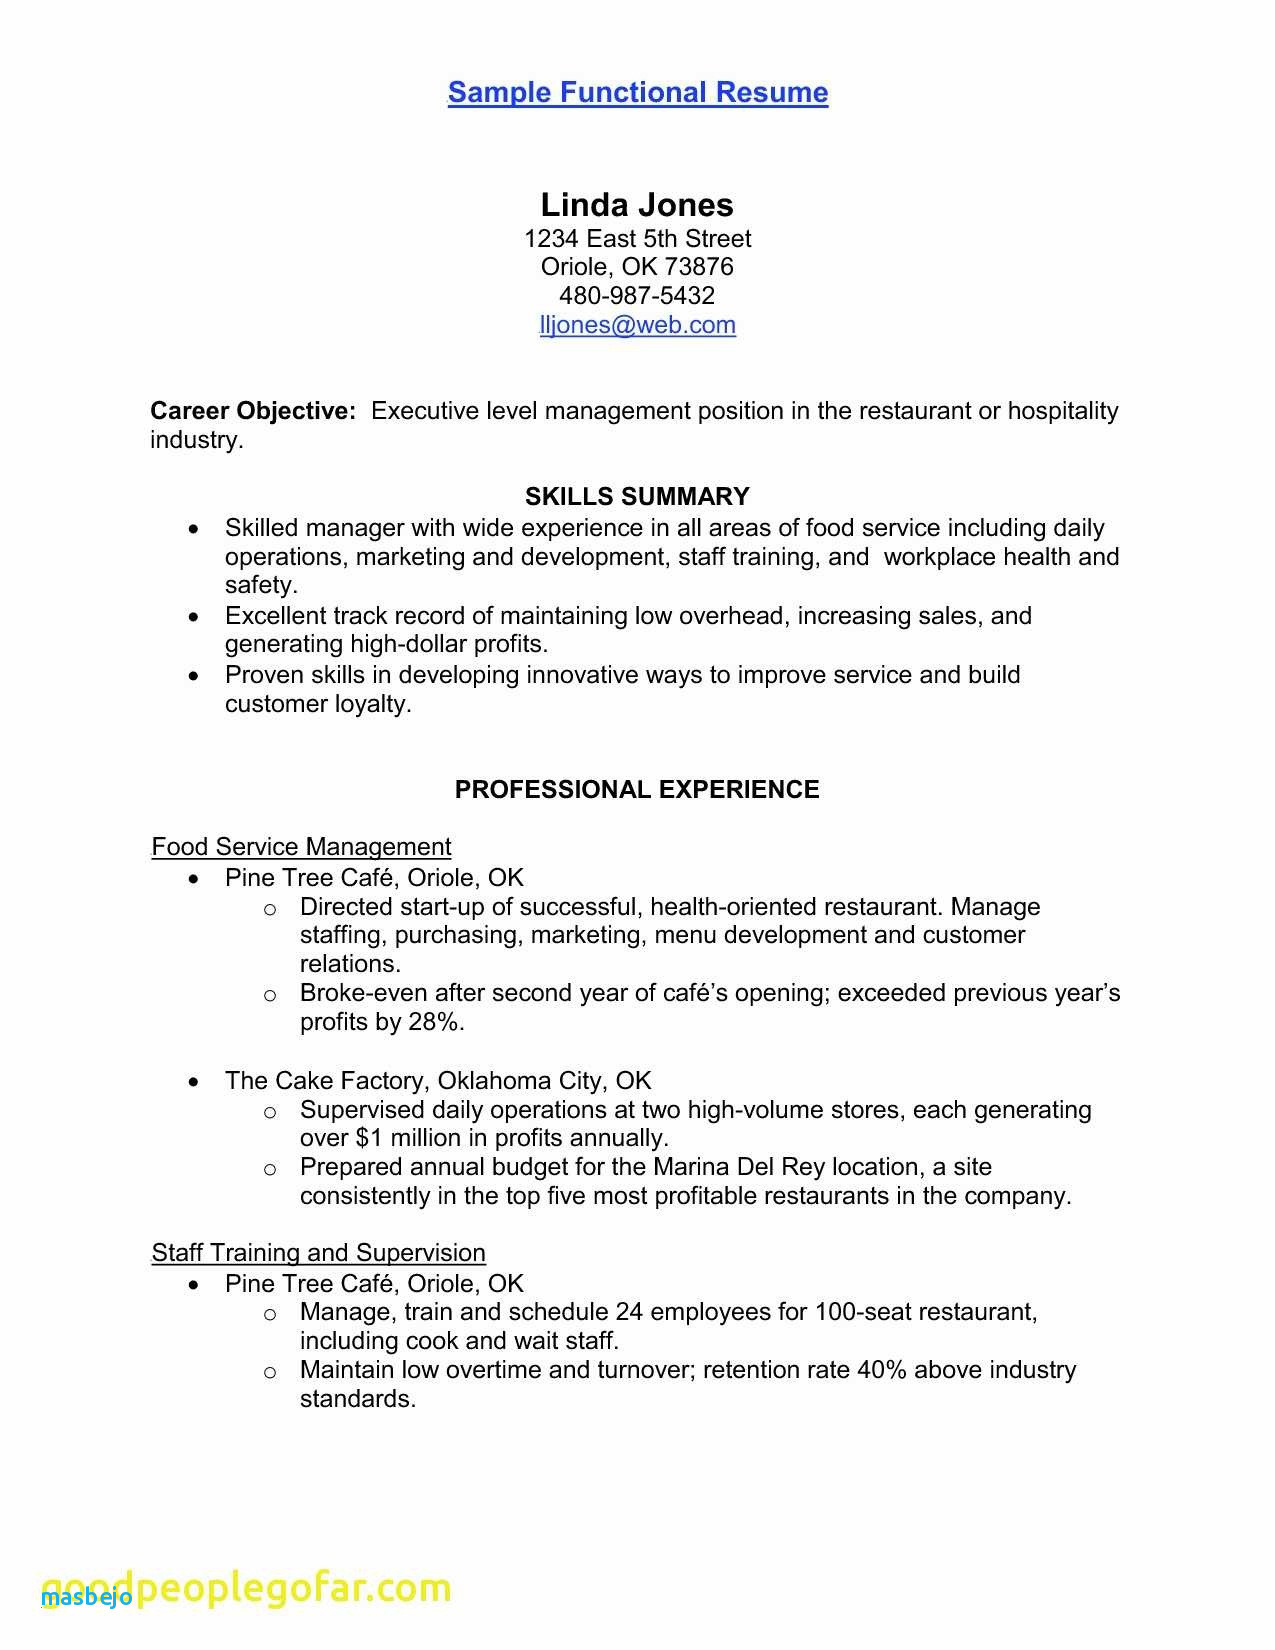 Service Industry Resume Templates - Pharmacy Resume Example Resume